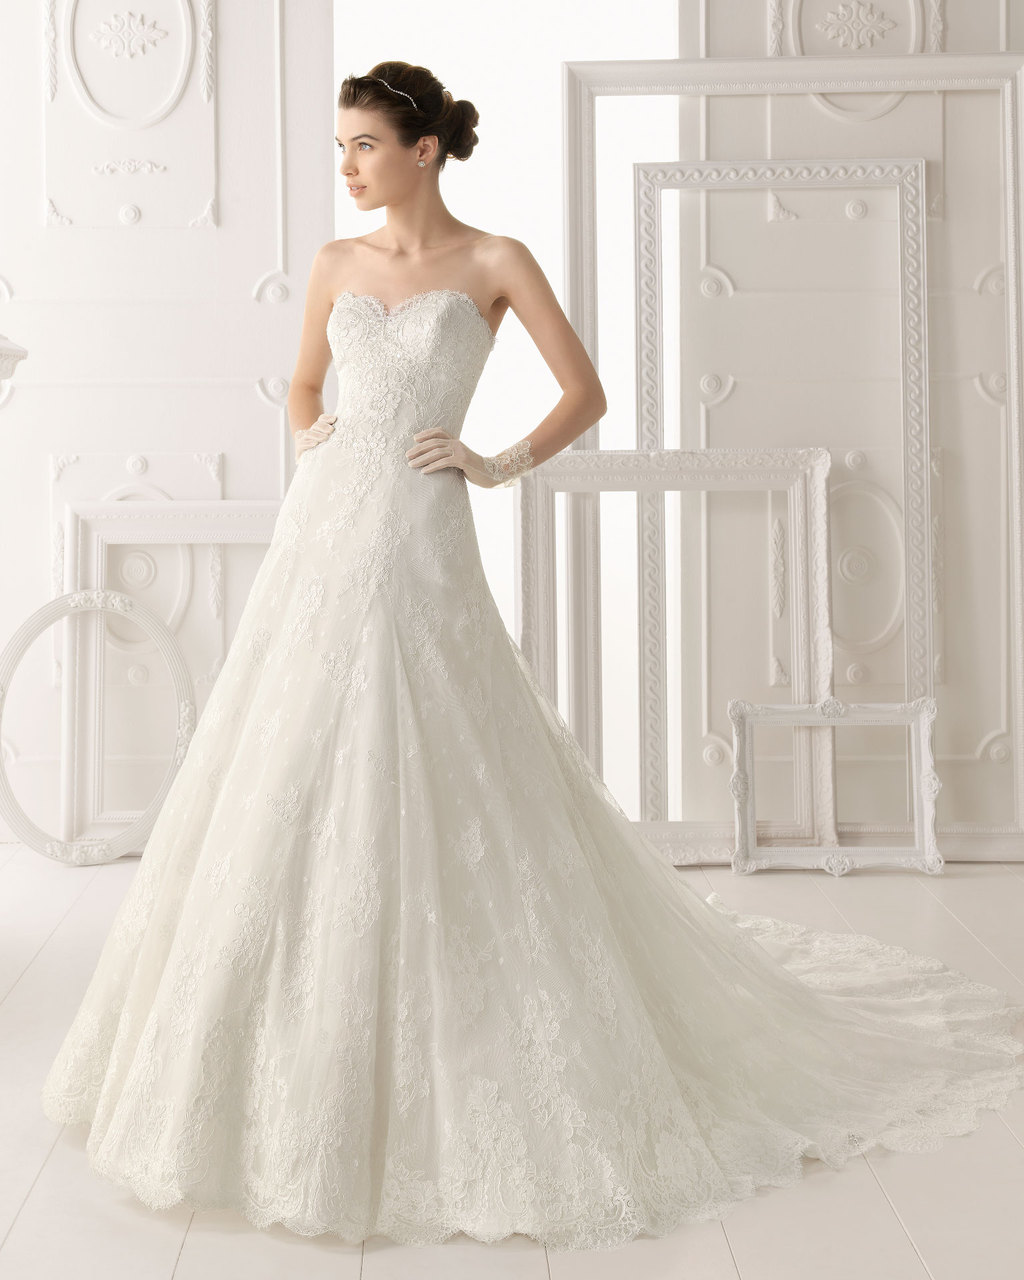 Aire-barcelona-wedding-dress-2014-bridal-overal.full